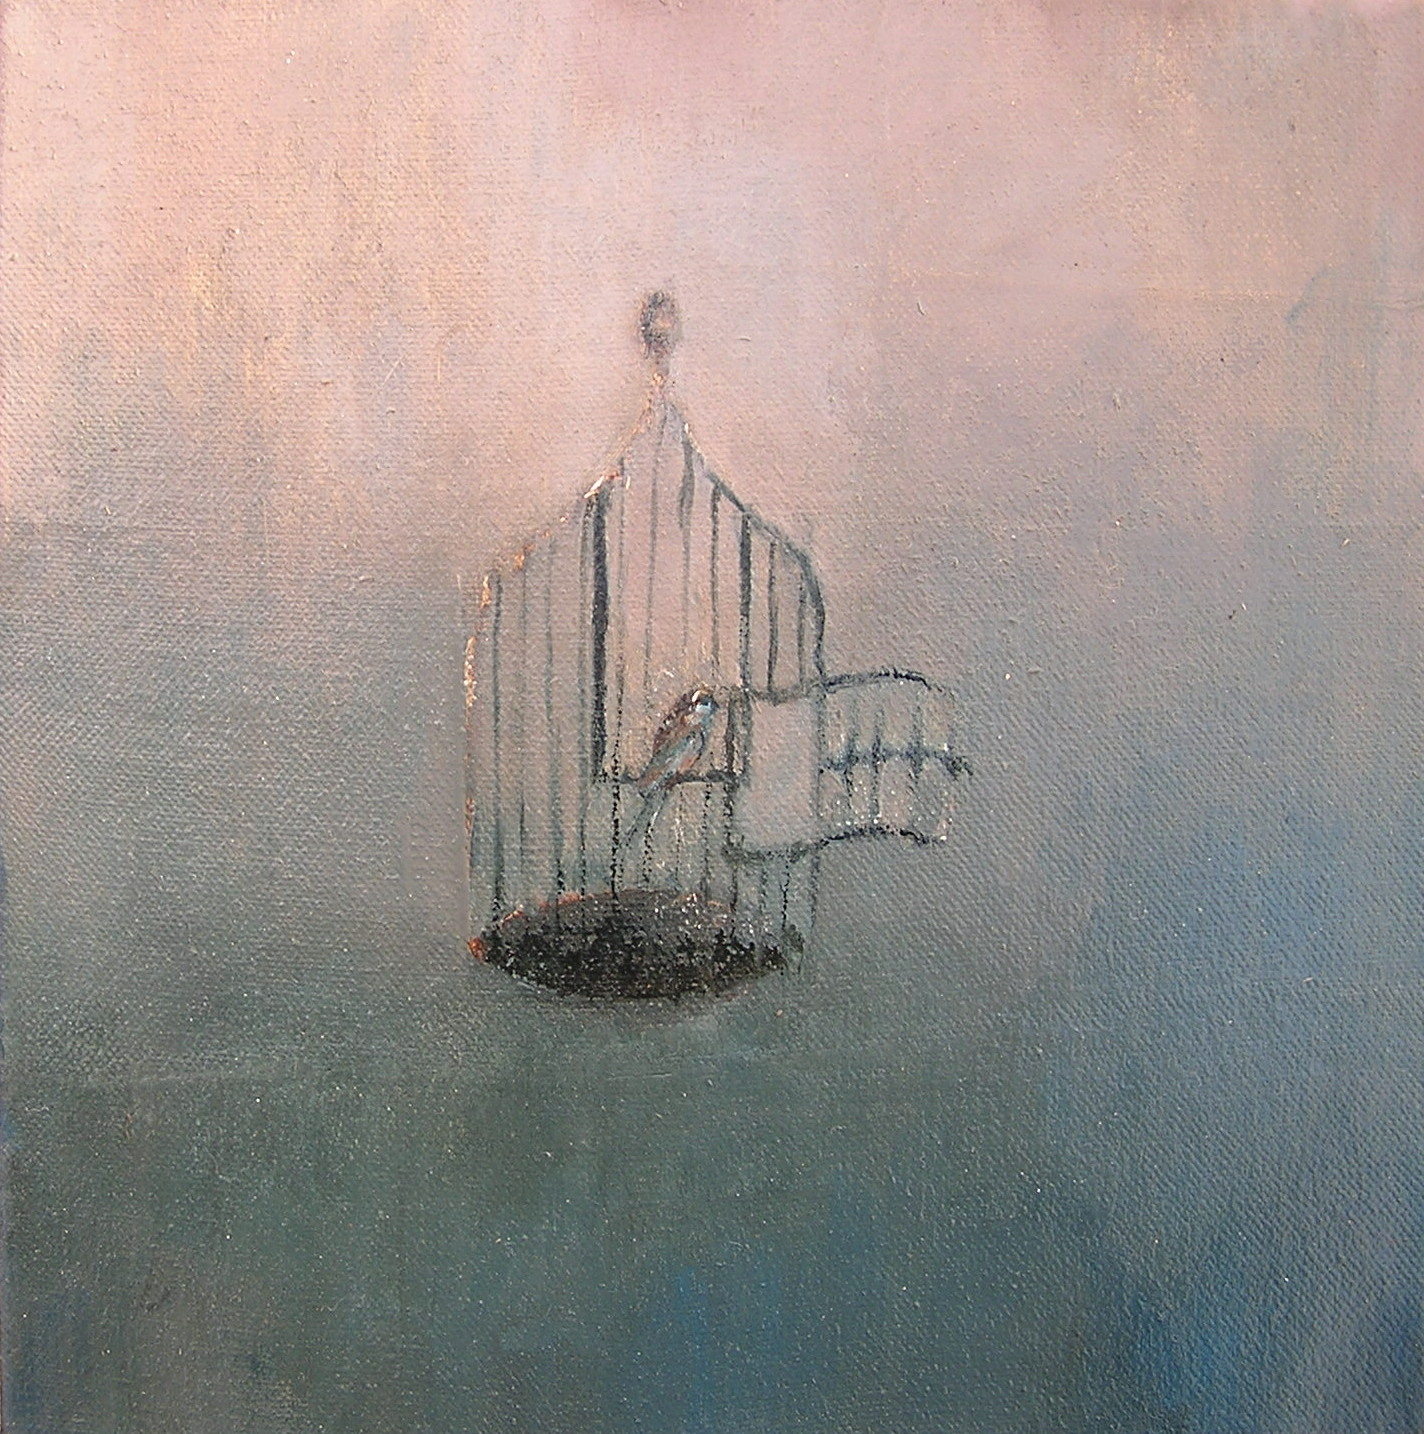 Bird Cage Freedom  bird cage ii  oil on canvasBird Freedom From Cage